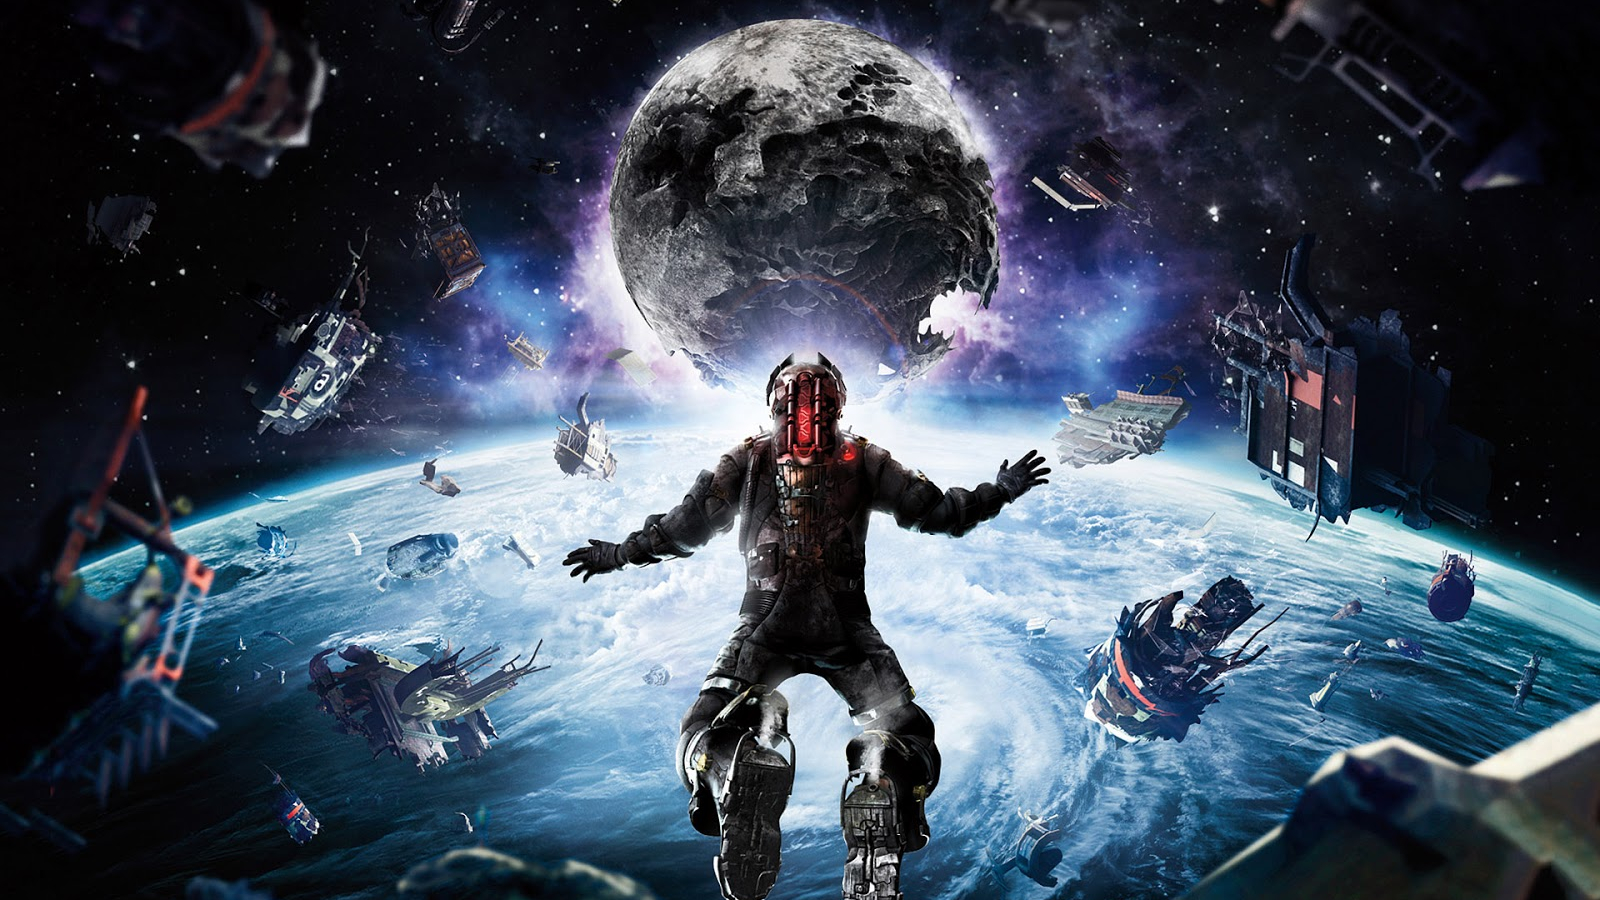 Free Download Dead Space 3 Wallpaper Blood Moon 1600x1000 For